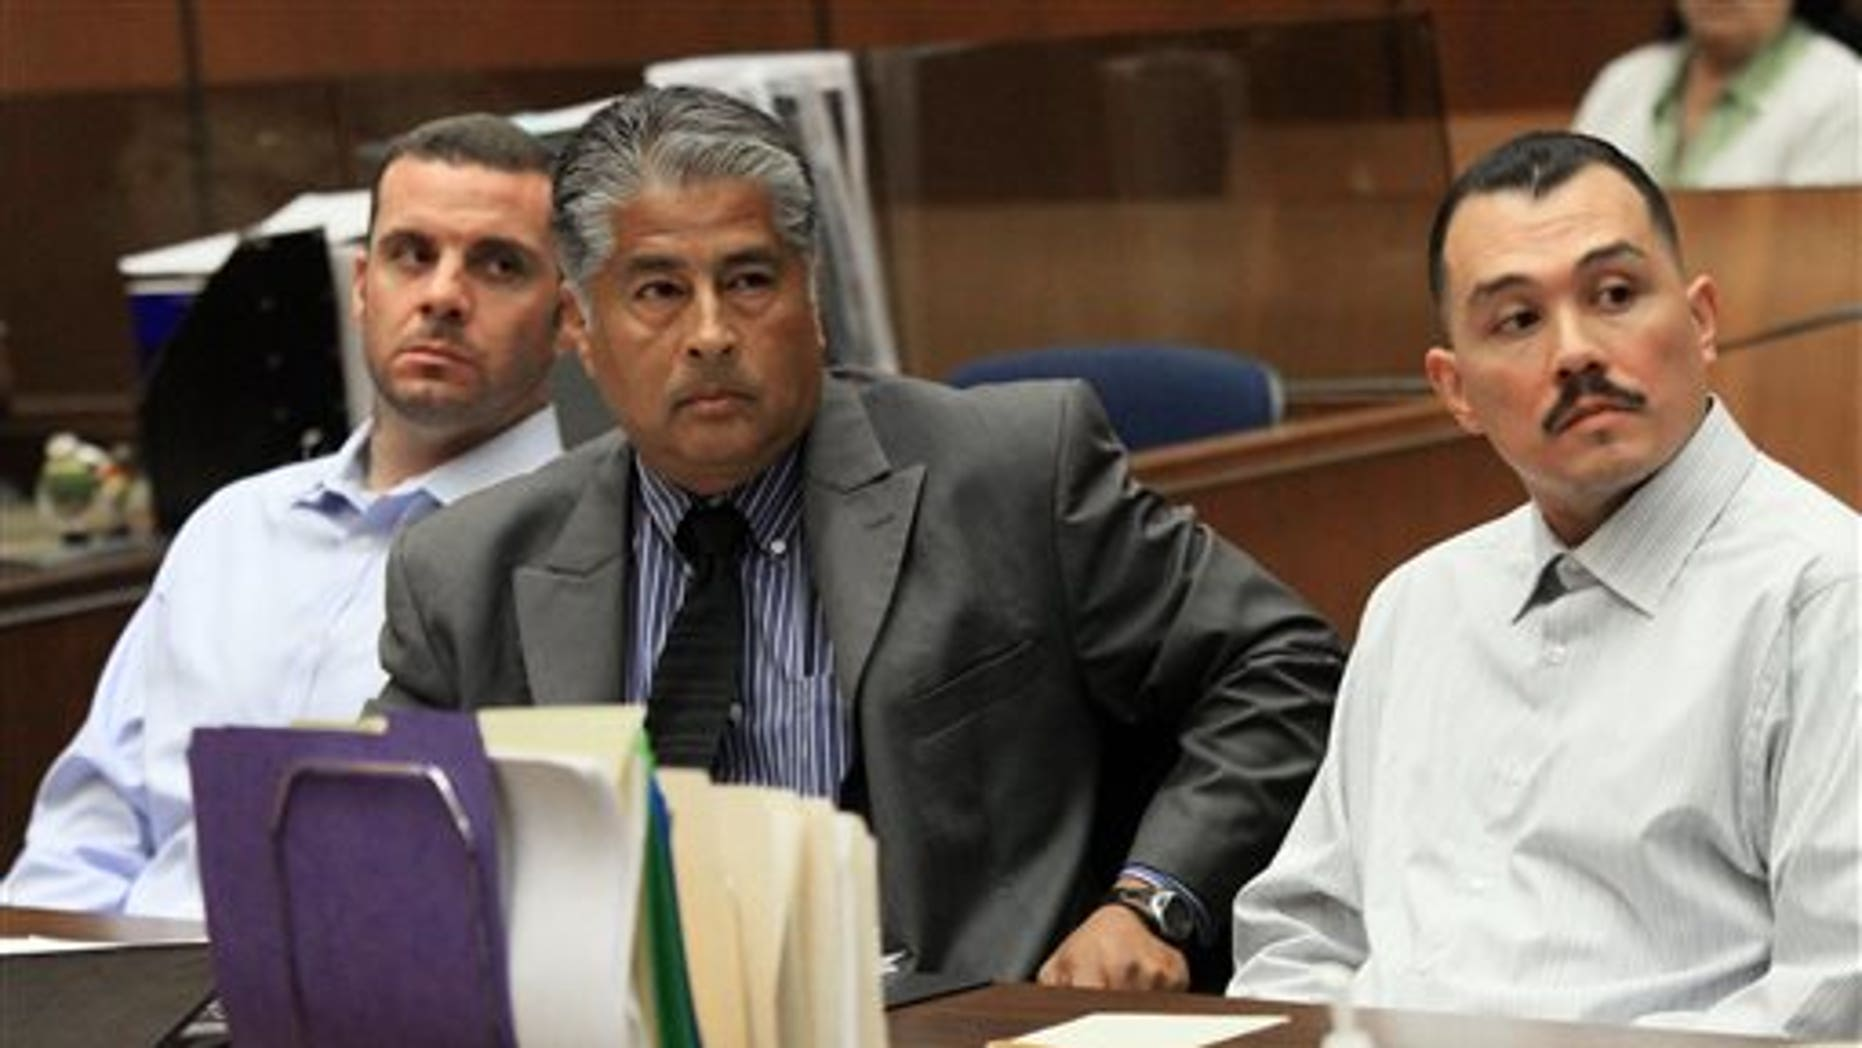 FILE - In this May 31, 2012 file photo, Marvin Norwood , left, with attorney Victor Escobedo, center, and co-defendant Louie Sanchez appear during a preliminary hearing held in Los Angeles Superior court. The two men have pleaded guilty on Thursday, Feb. 20, 2014 in Los Angeles to a 2011 beating at Dodger Stadium that left San Francisco Giants fan Bryan Stow brain damaged and disabled. (AP Photo/Los Angeles Times, Irfan Khan, Pool, File)